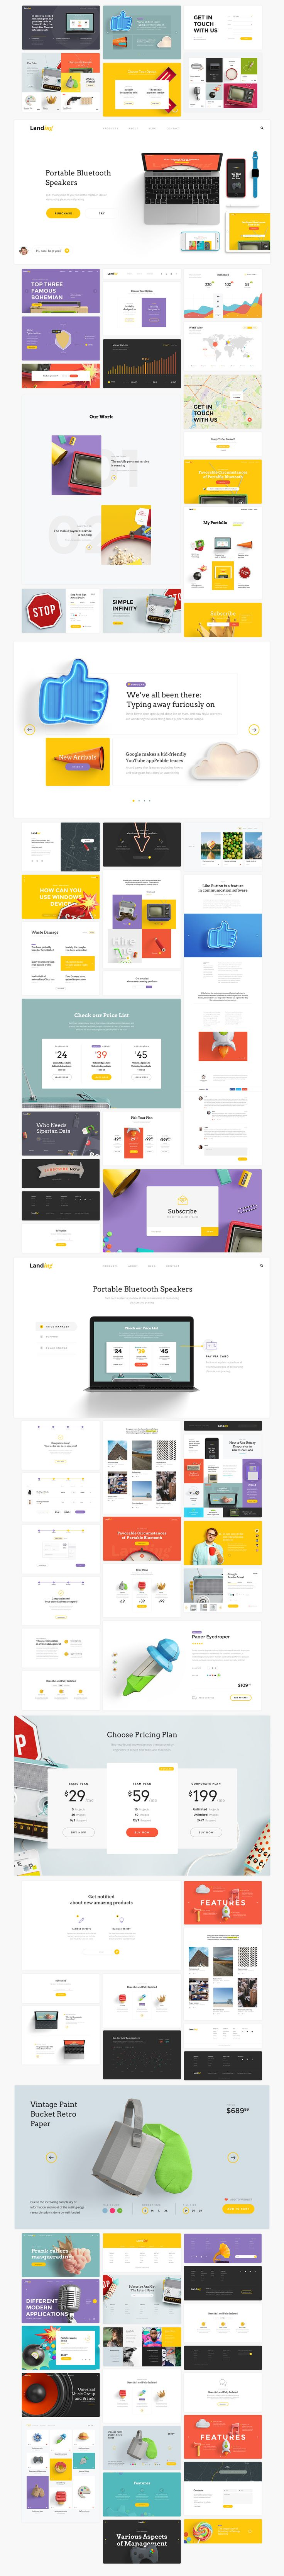 Free UI kit for creating beautiful landing pages. Works with Photoshop and Sketch